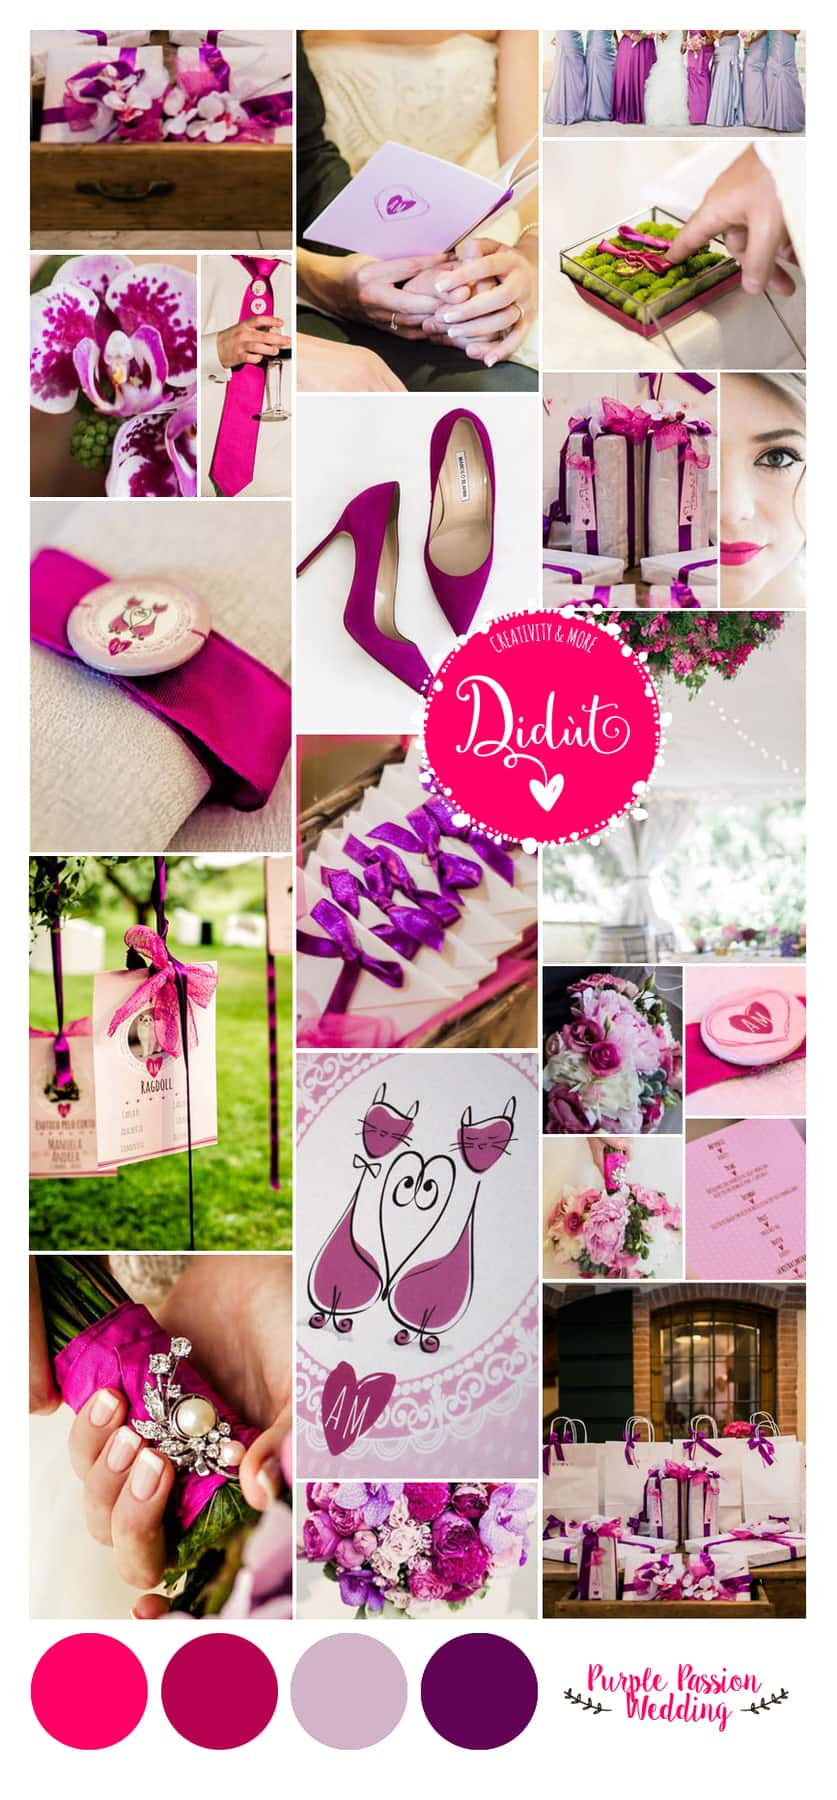 Didut WeddingMood PURPLE